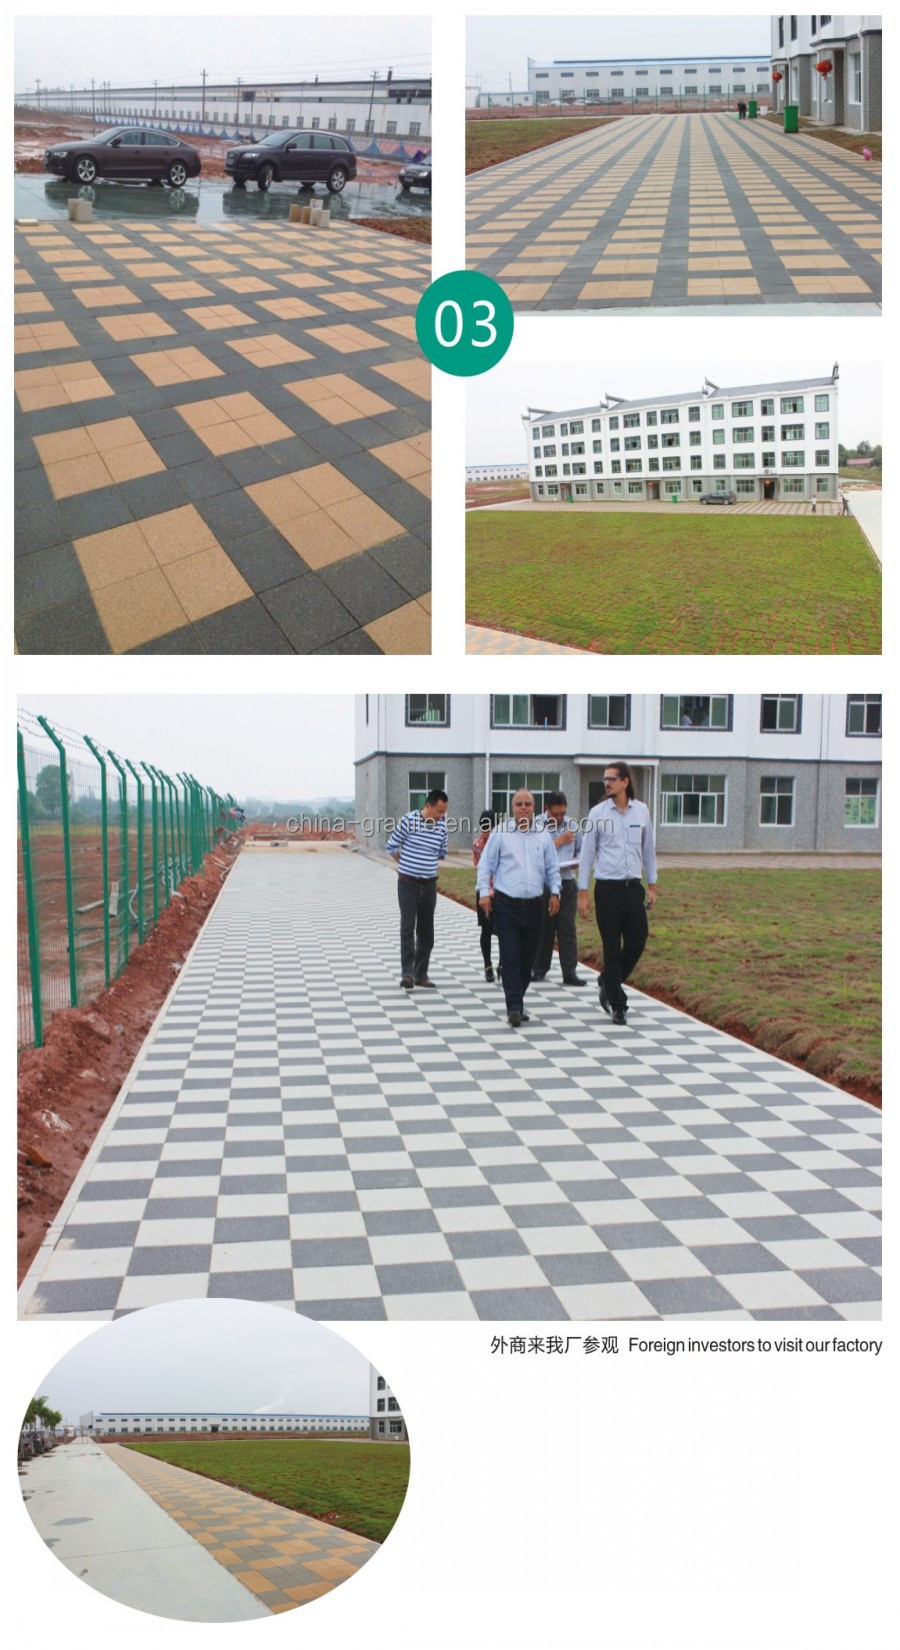 China Manufacture Water Permeable Paving Home Depot Ceramic Brick ...